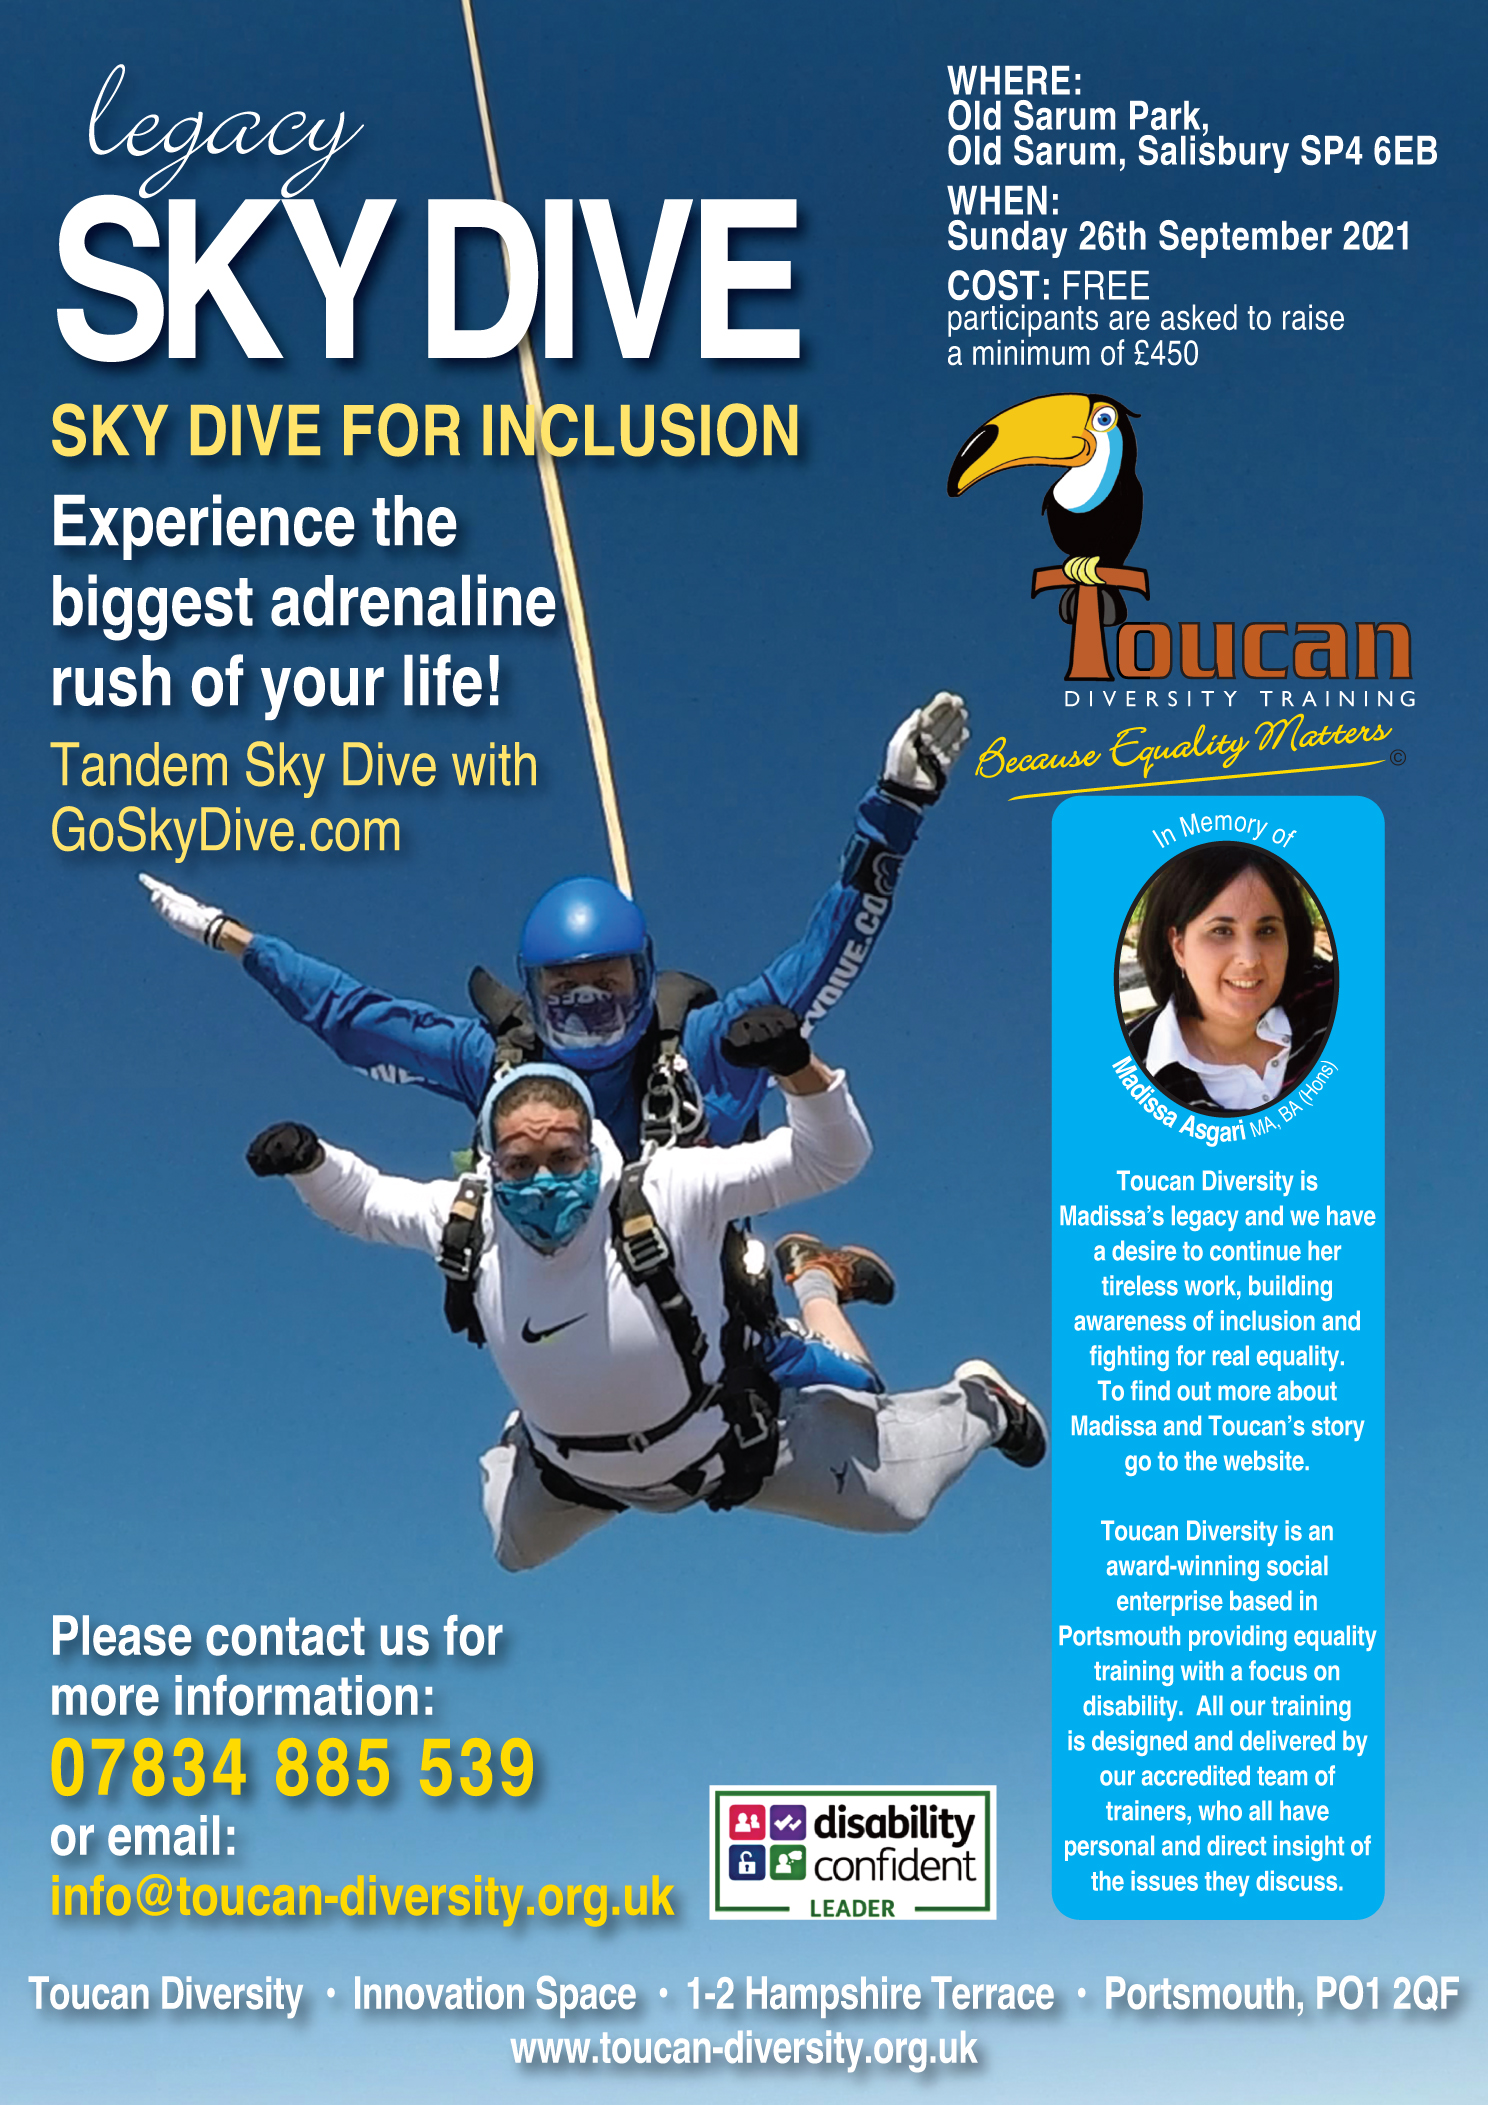 Poster for Skydive fundraiser